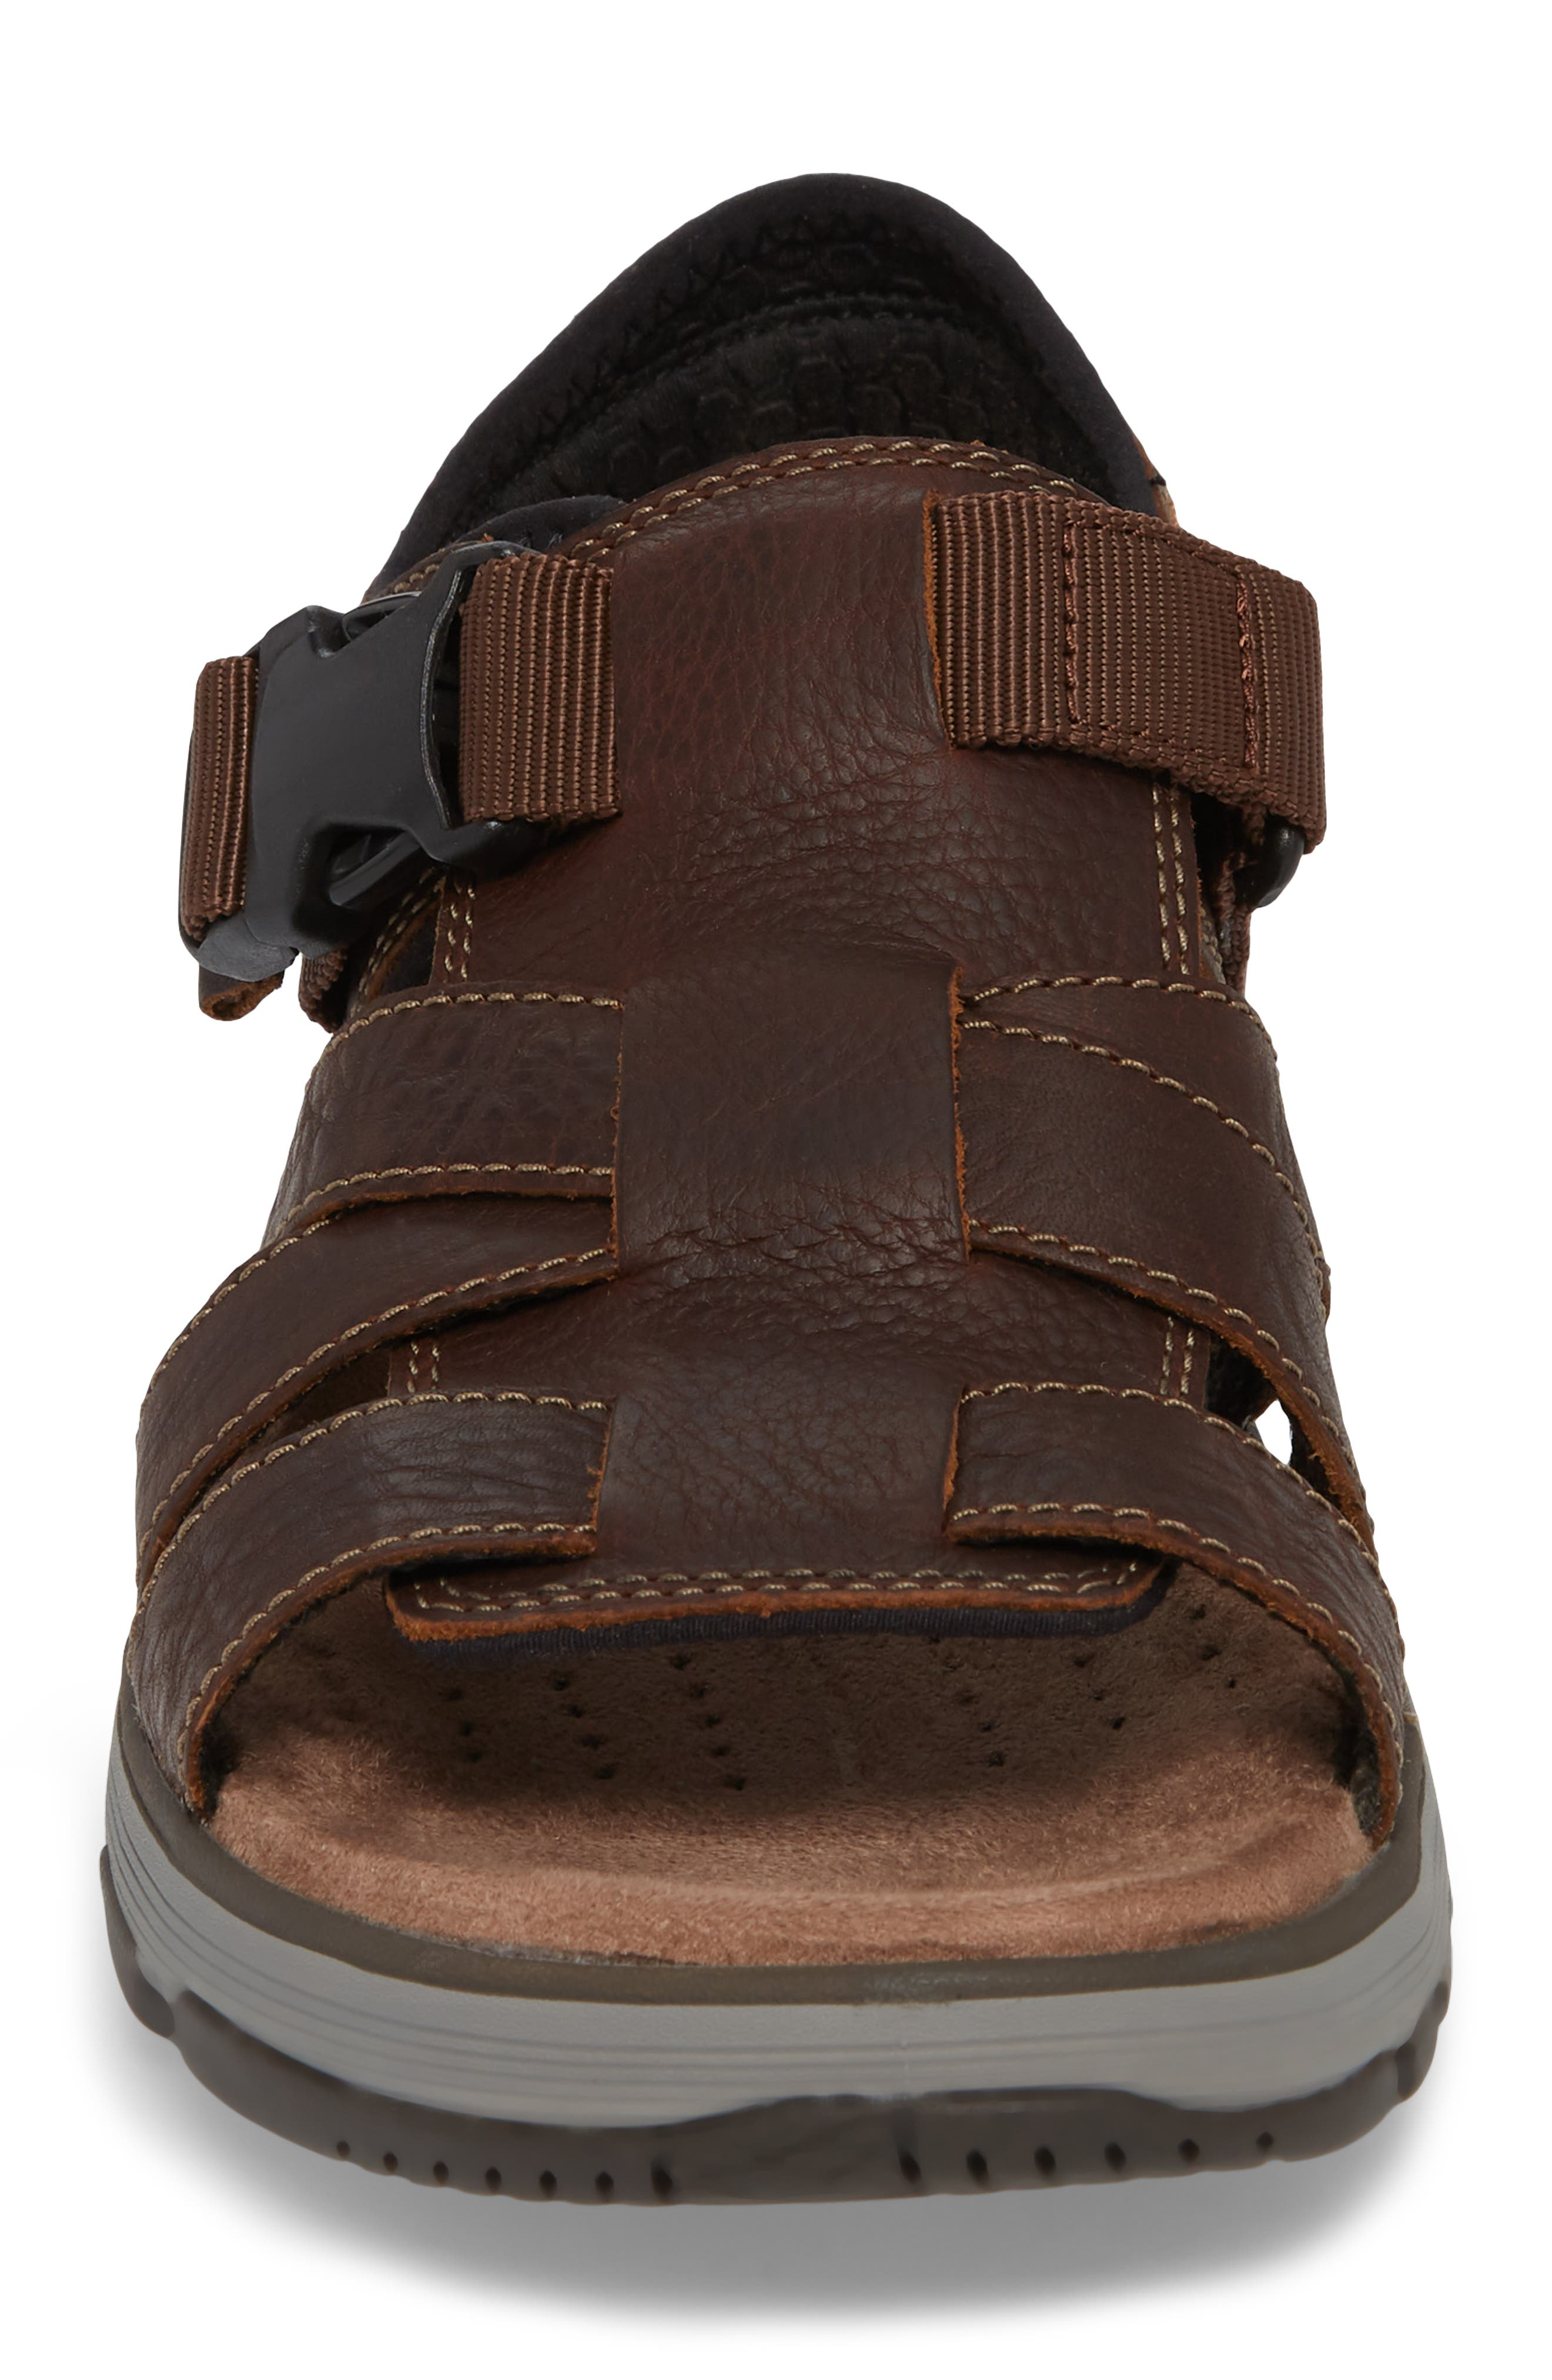 Clarks<sup>®</sup> Untrek Cove Fisherman Sandal,                             Alternate thumbnail 7, color,